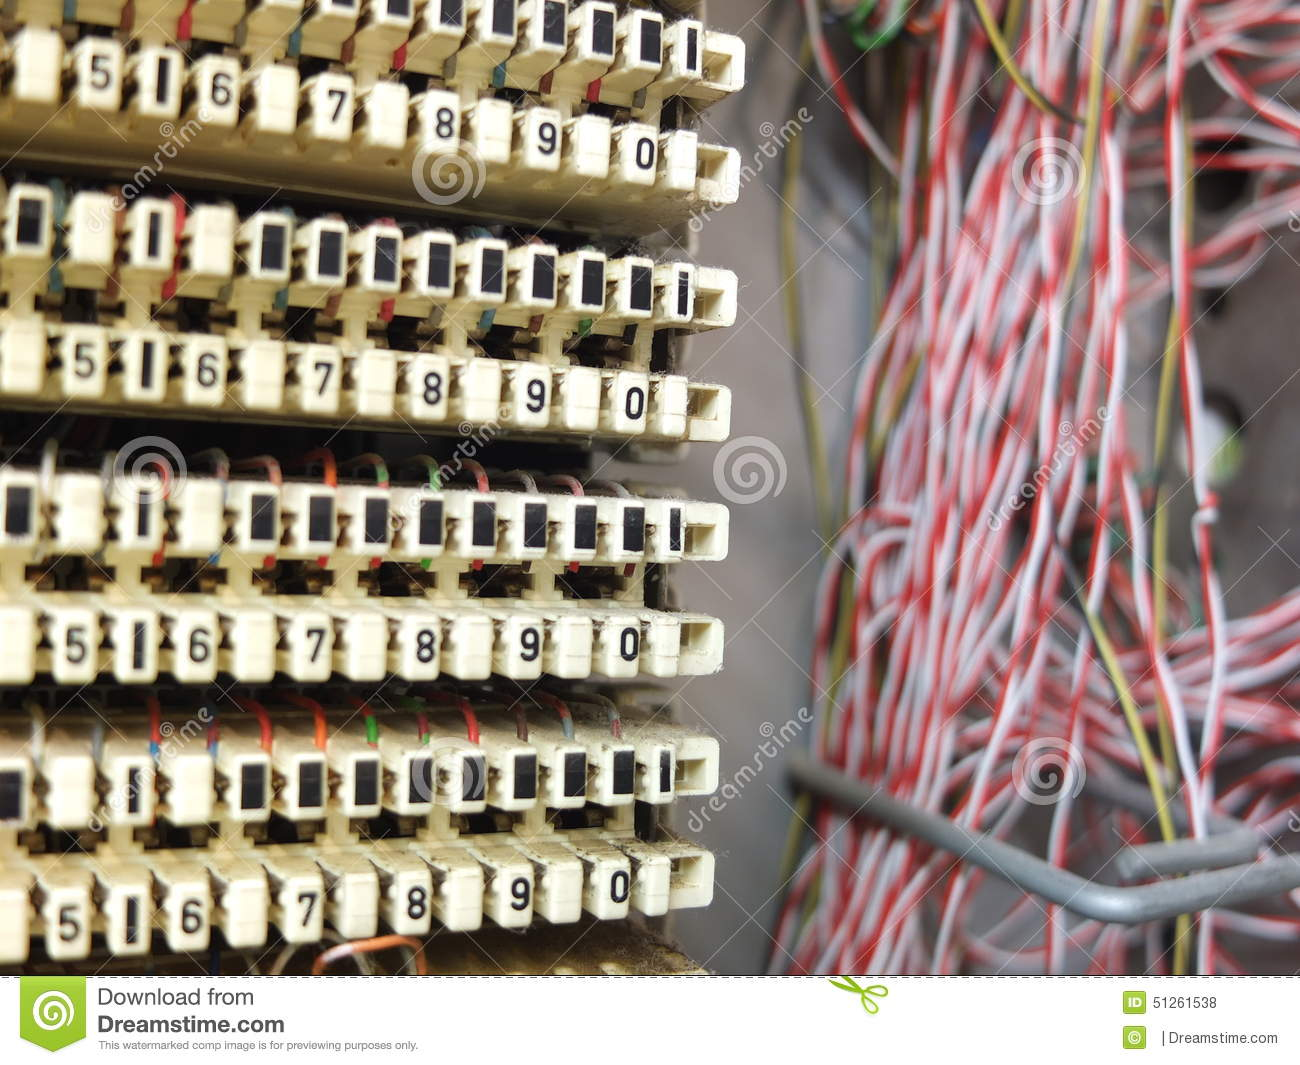 hight resolution of phone junction box switchboard with lots of cables